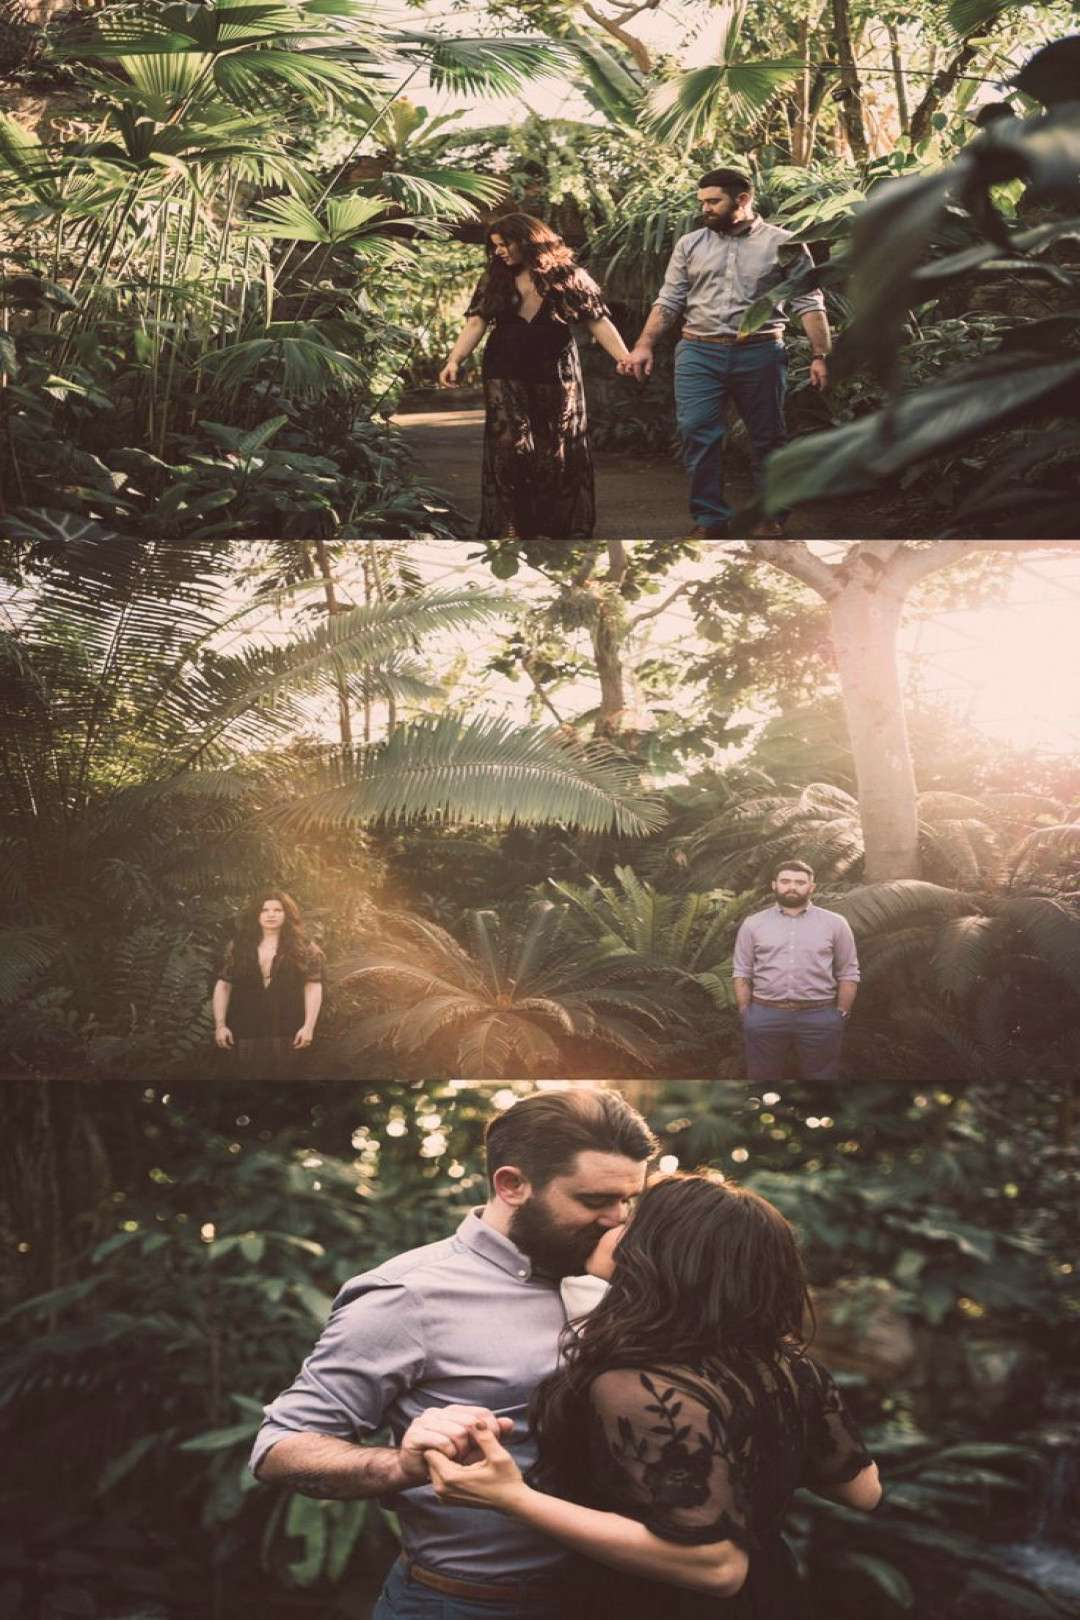 Botanical Gardens Engagement Session - Couples session in greenhouse - MoBot - M... - Botanical Ga